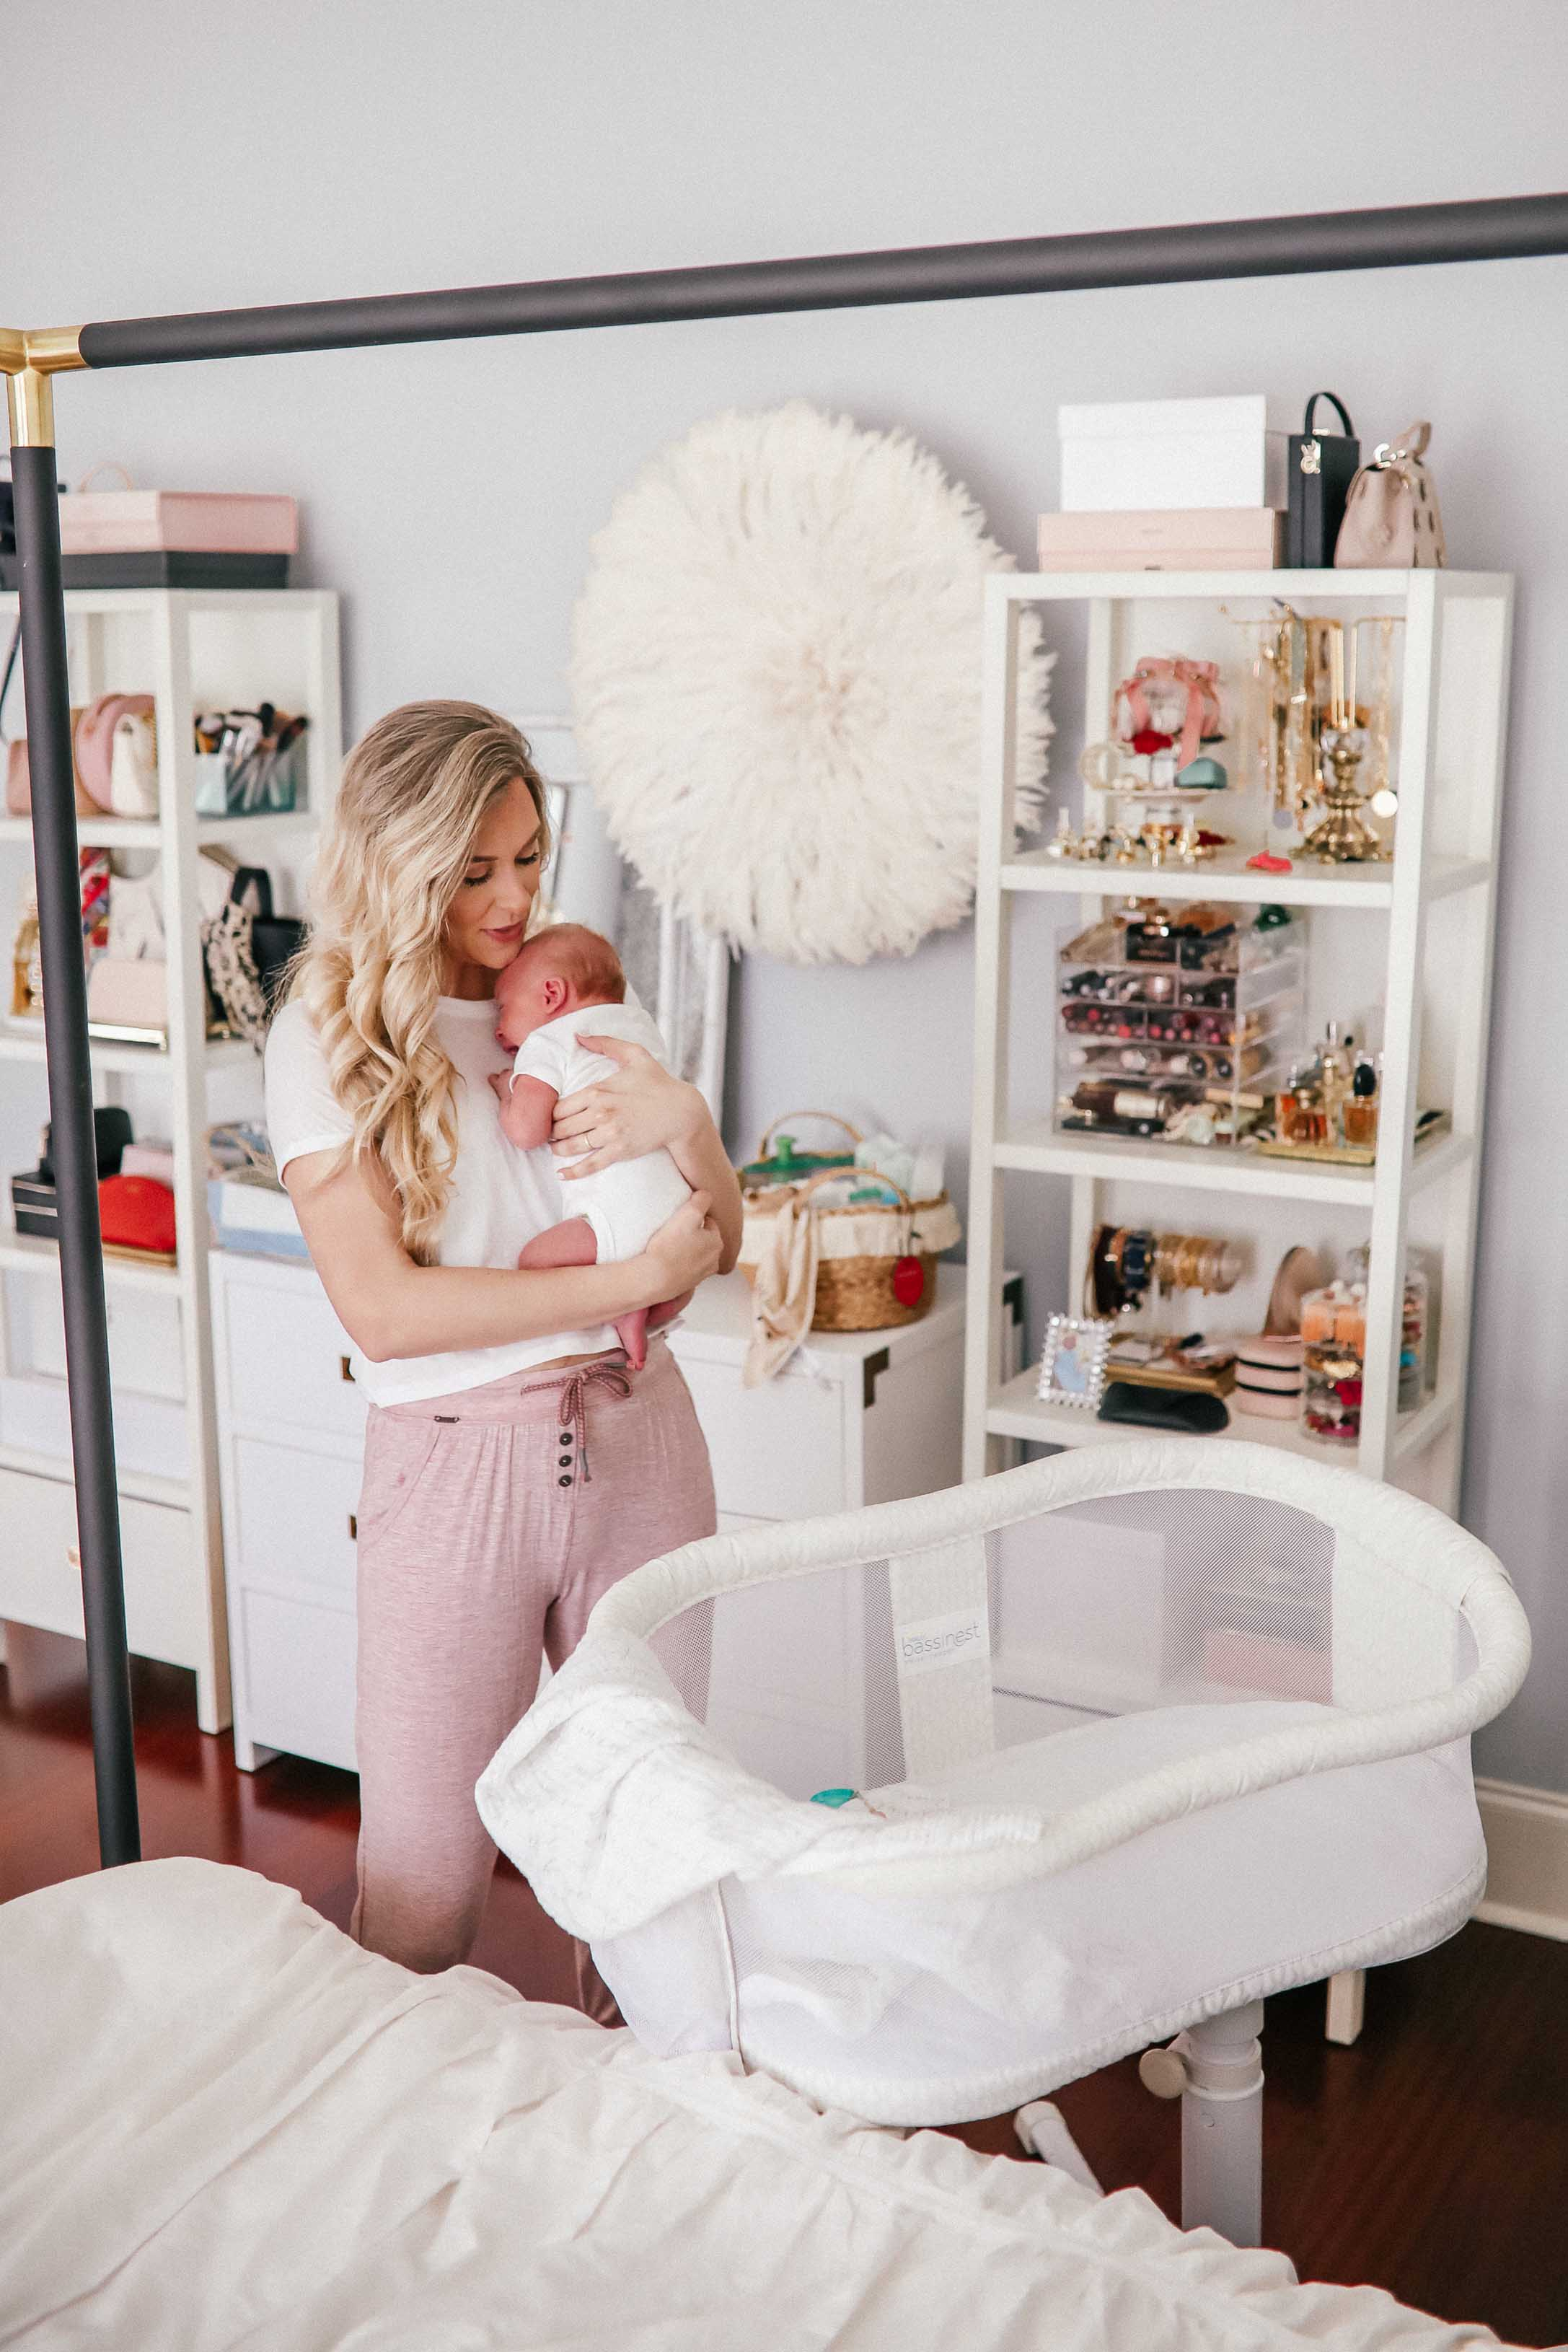 What I've Learned in the 4th Trimester